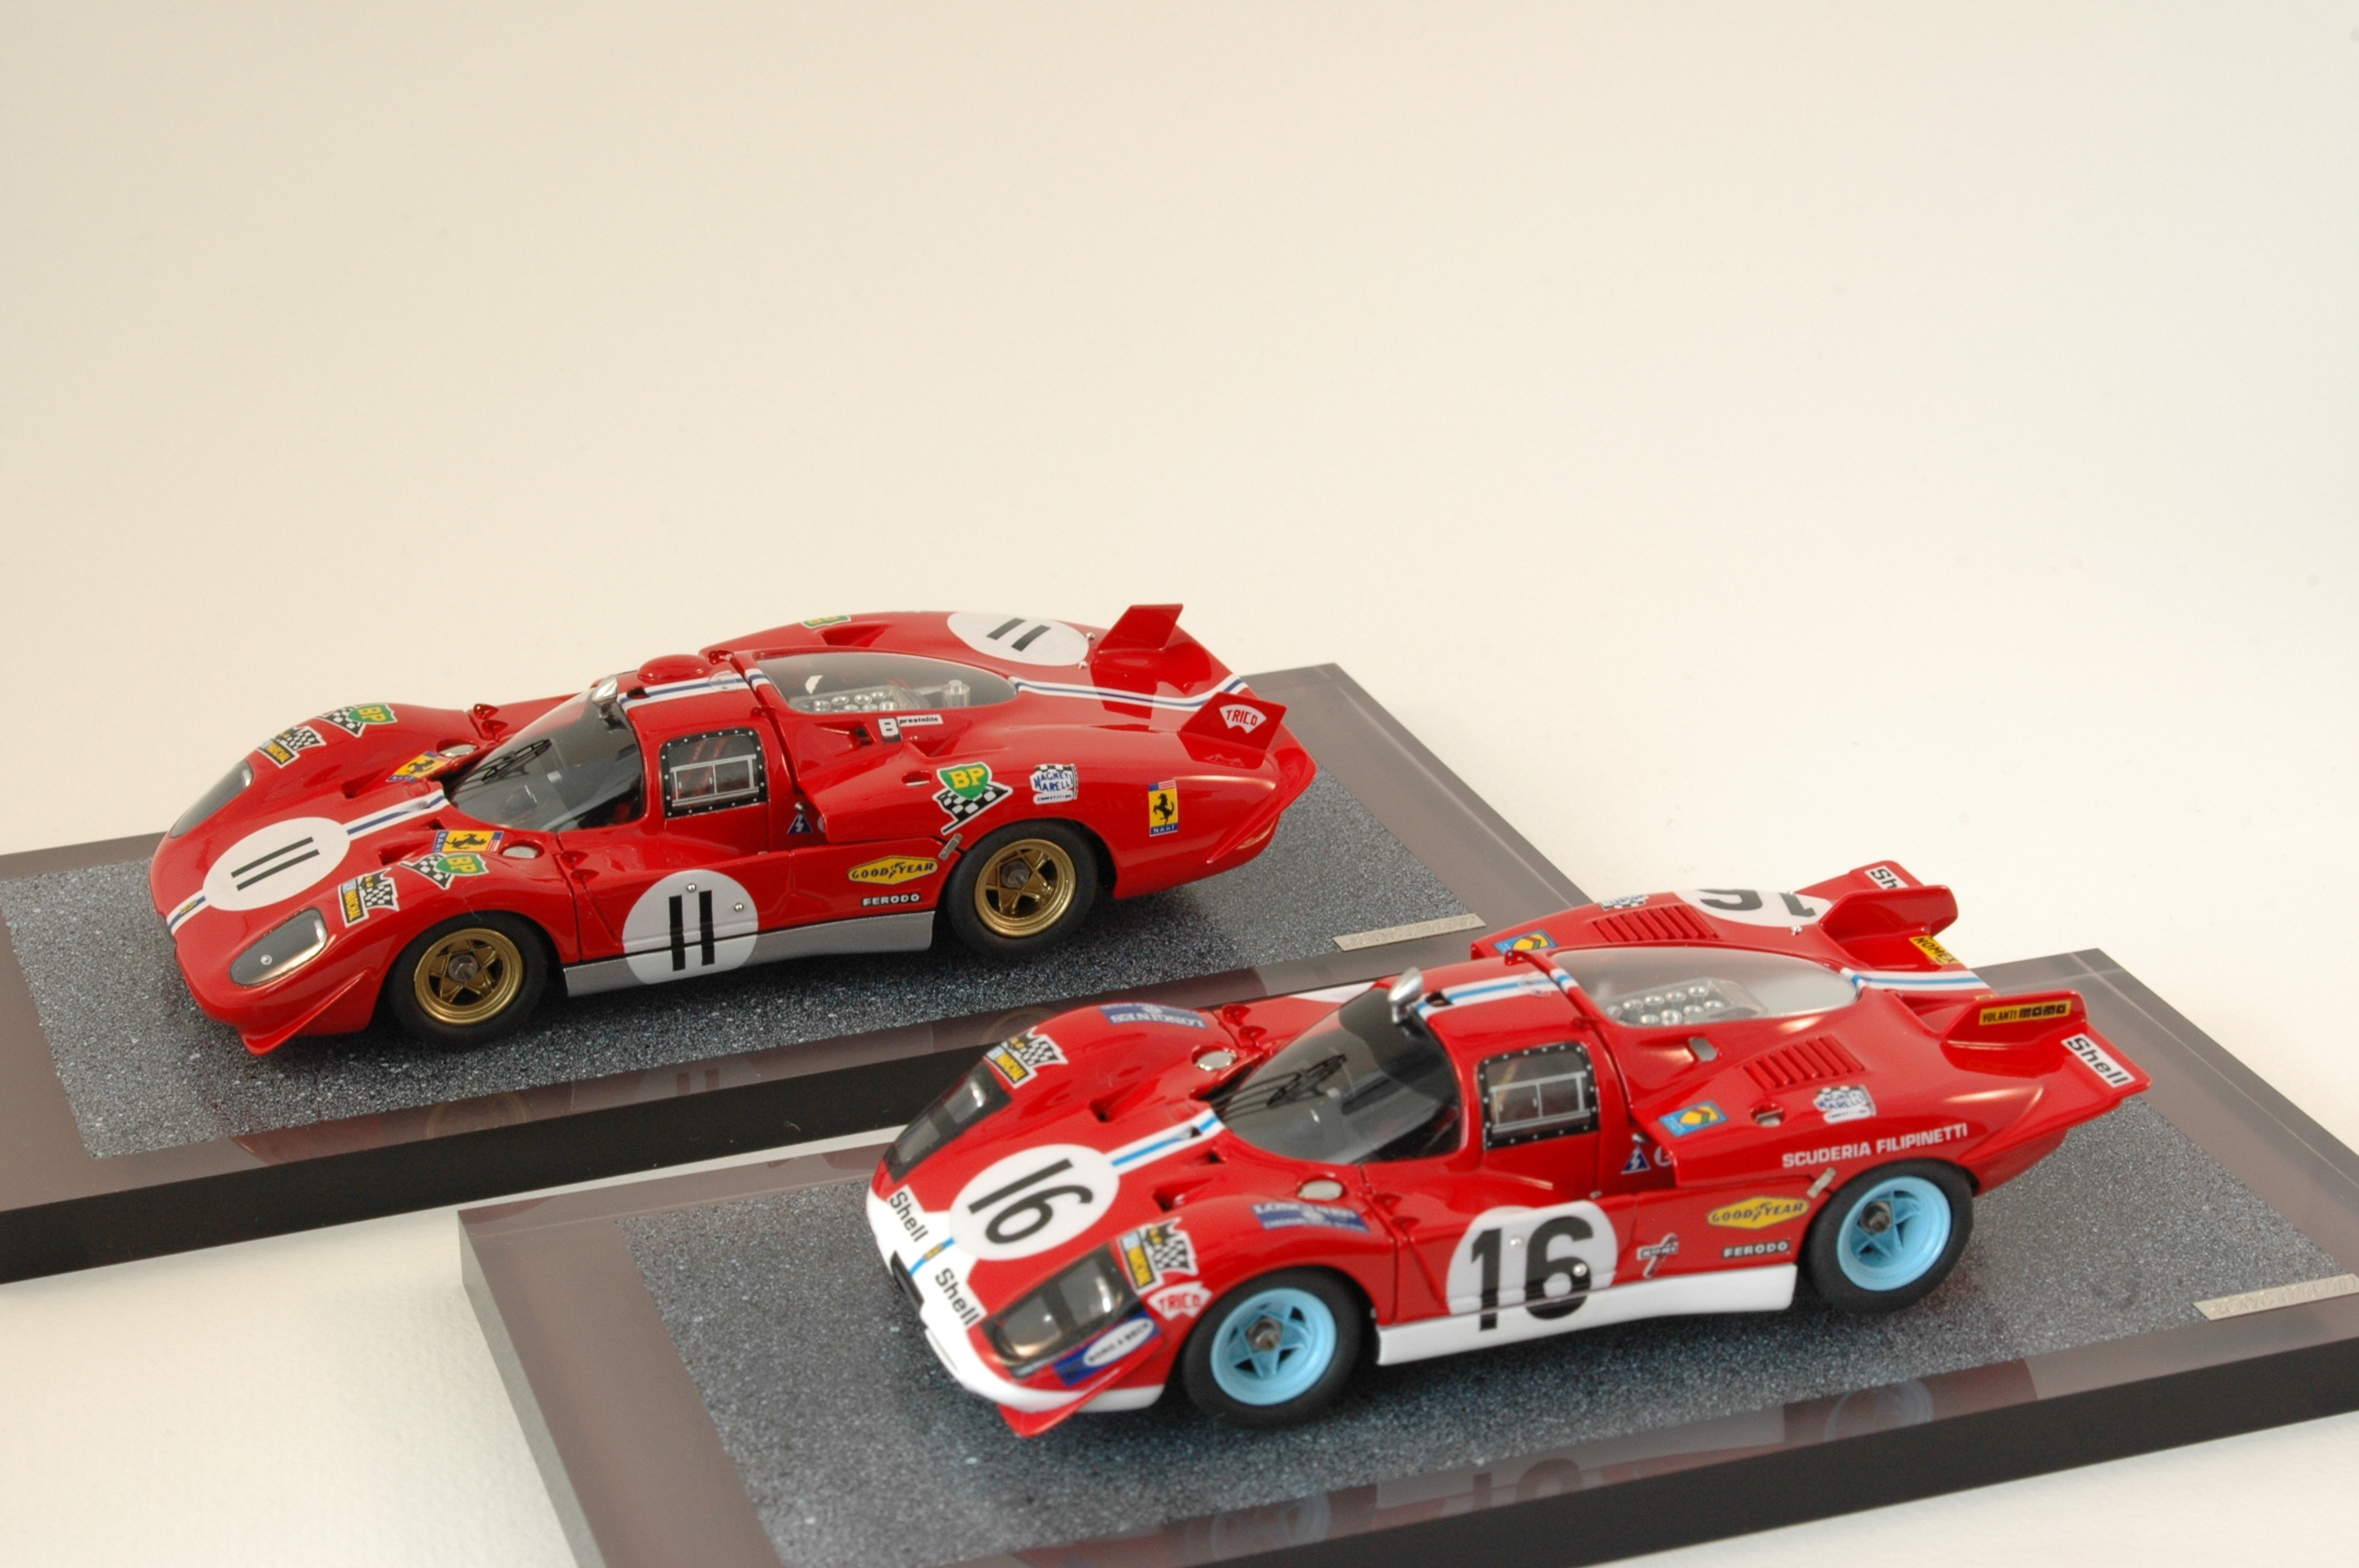 H. Duband : Ferrari 512 S from AMR kits